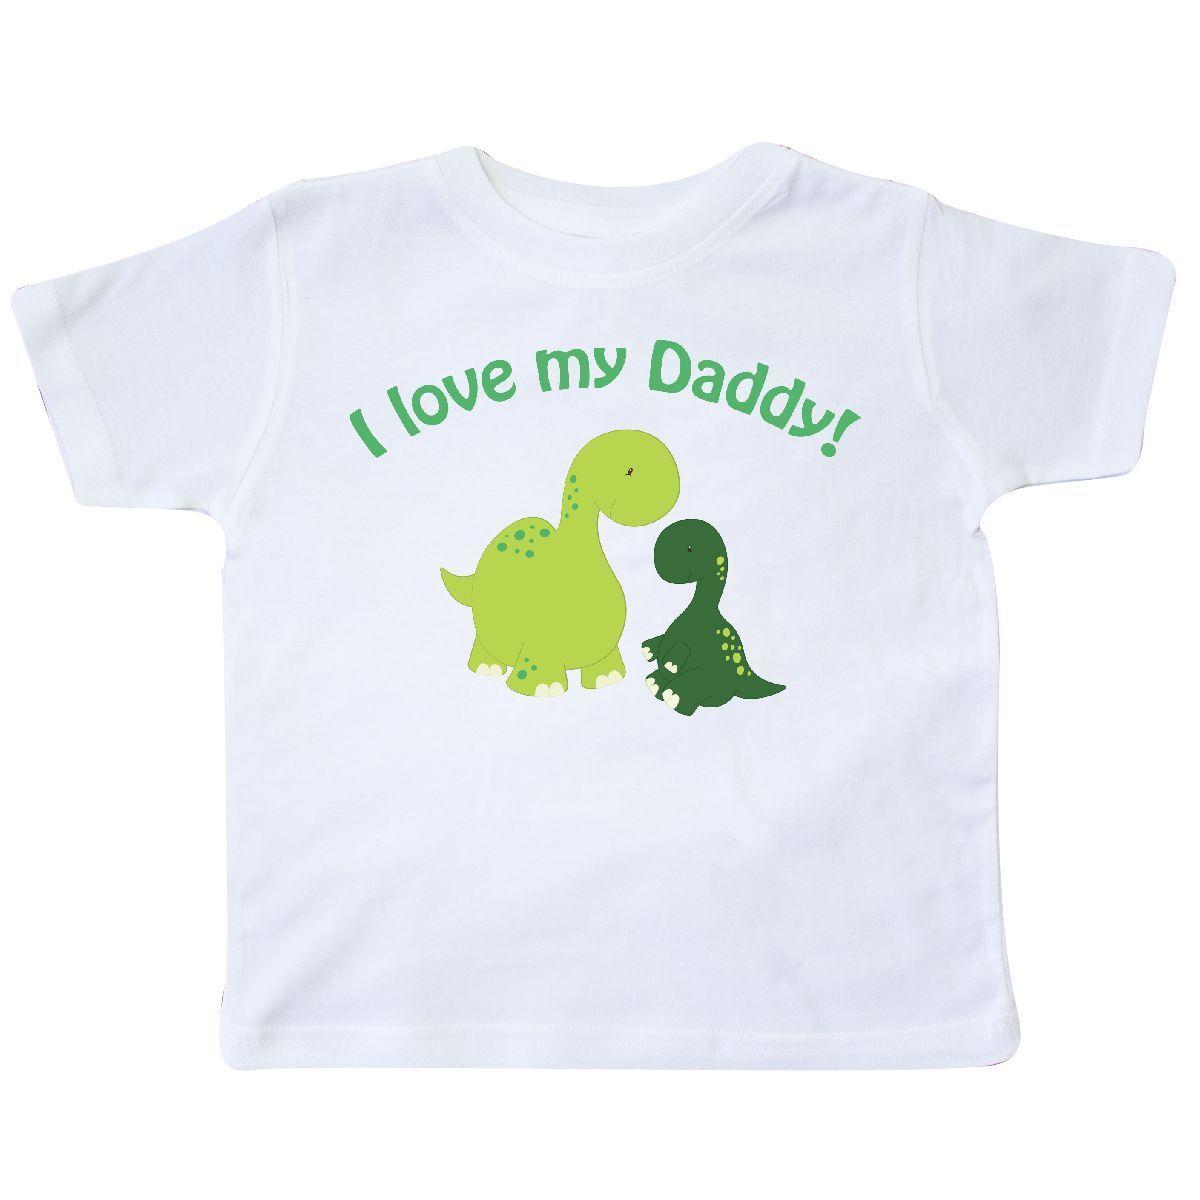 e4859485 Inktastic I Love My Daddy Dinosaurs Toddler T Shirt Dinosaur Fathers Day  Dad Kid Funny Unisex Casual Tee Gift Online Buy T Shirts Tna Shirts From  Tee_spirit ...